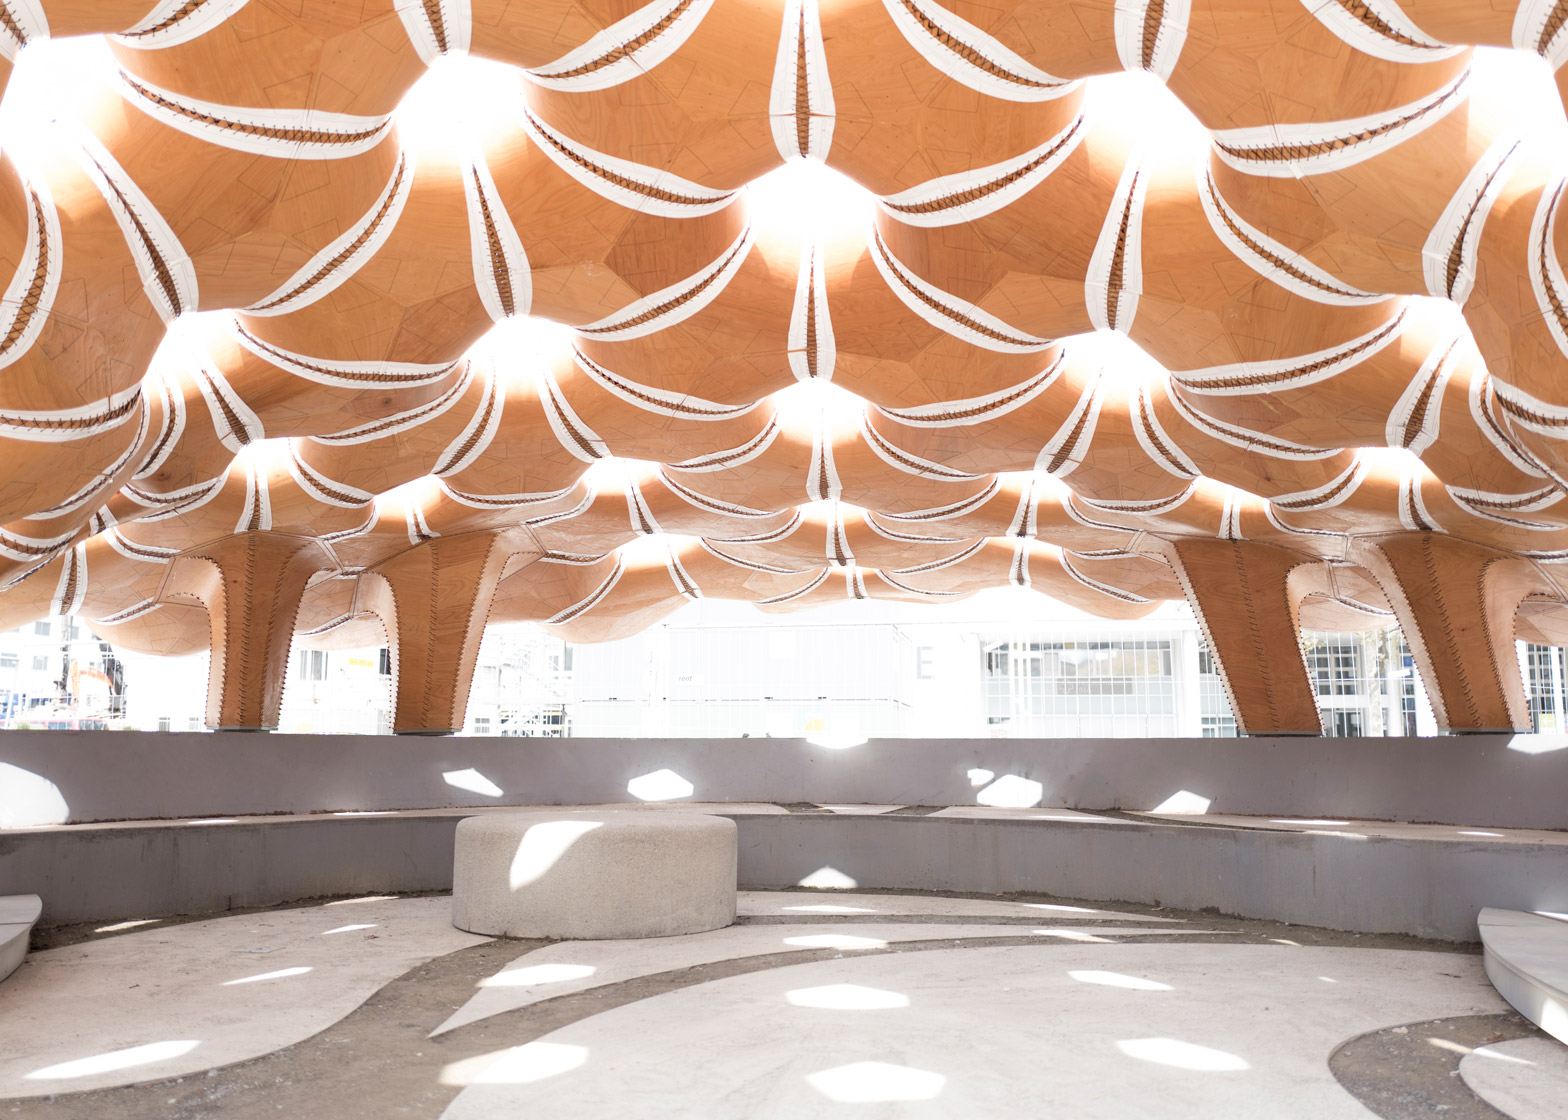 10 projects look forward to a world where robots produce architecture